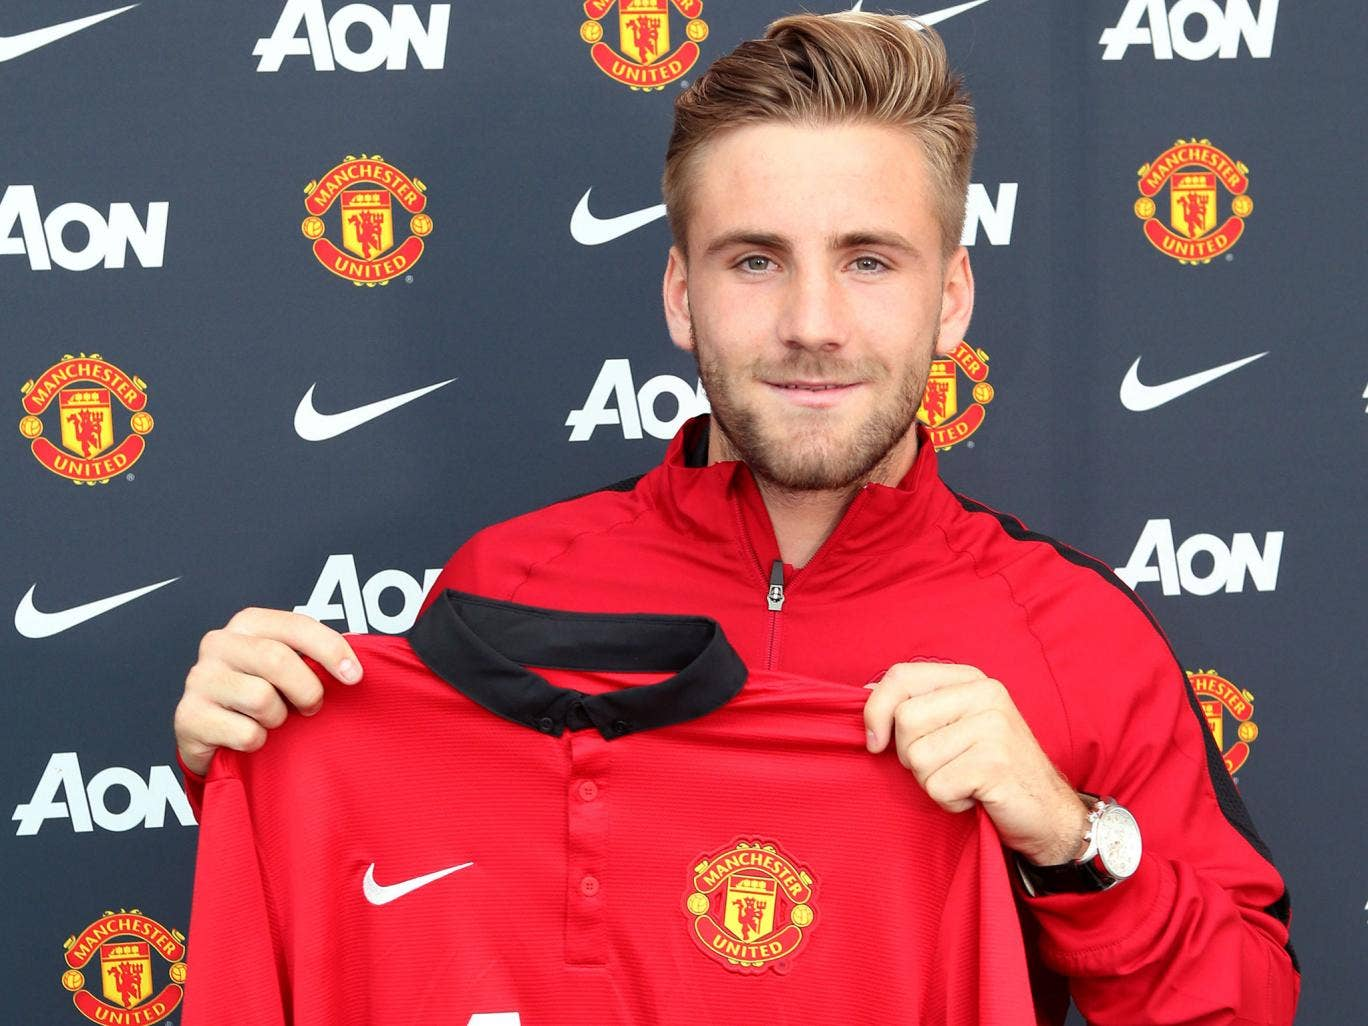 Luke Shaw has joined Manchester United